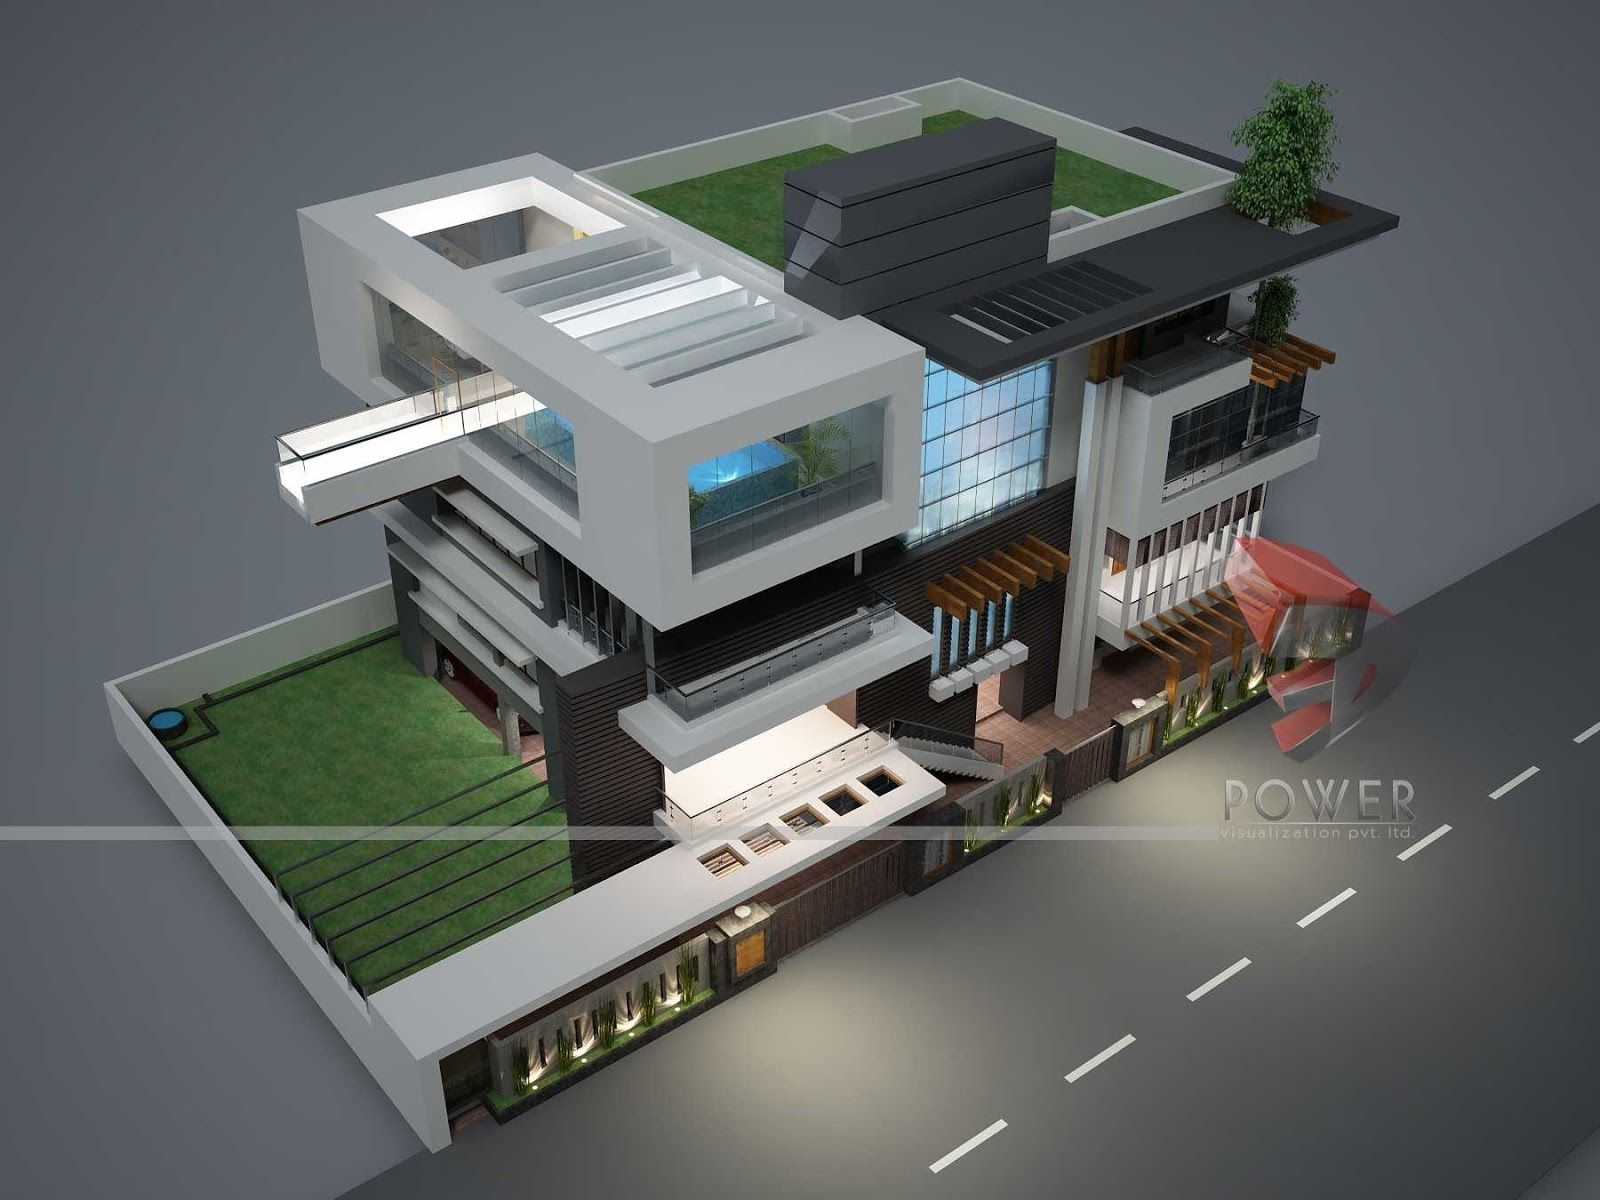 Http Www Inmagz Com Shinny Modelingd Architecture Animationultra Modern House Plans Designs Ap House Design Pictures Modern House Plans House Design Drawing